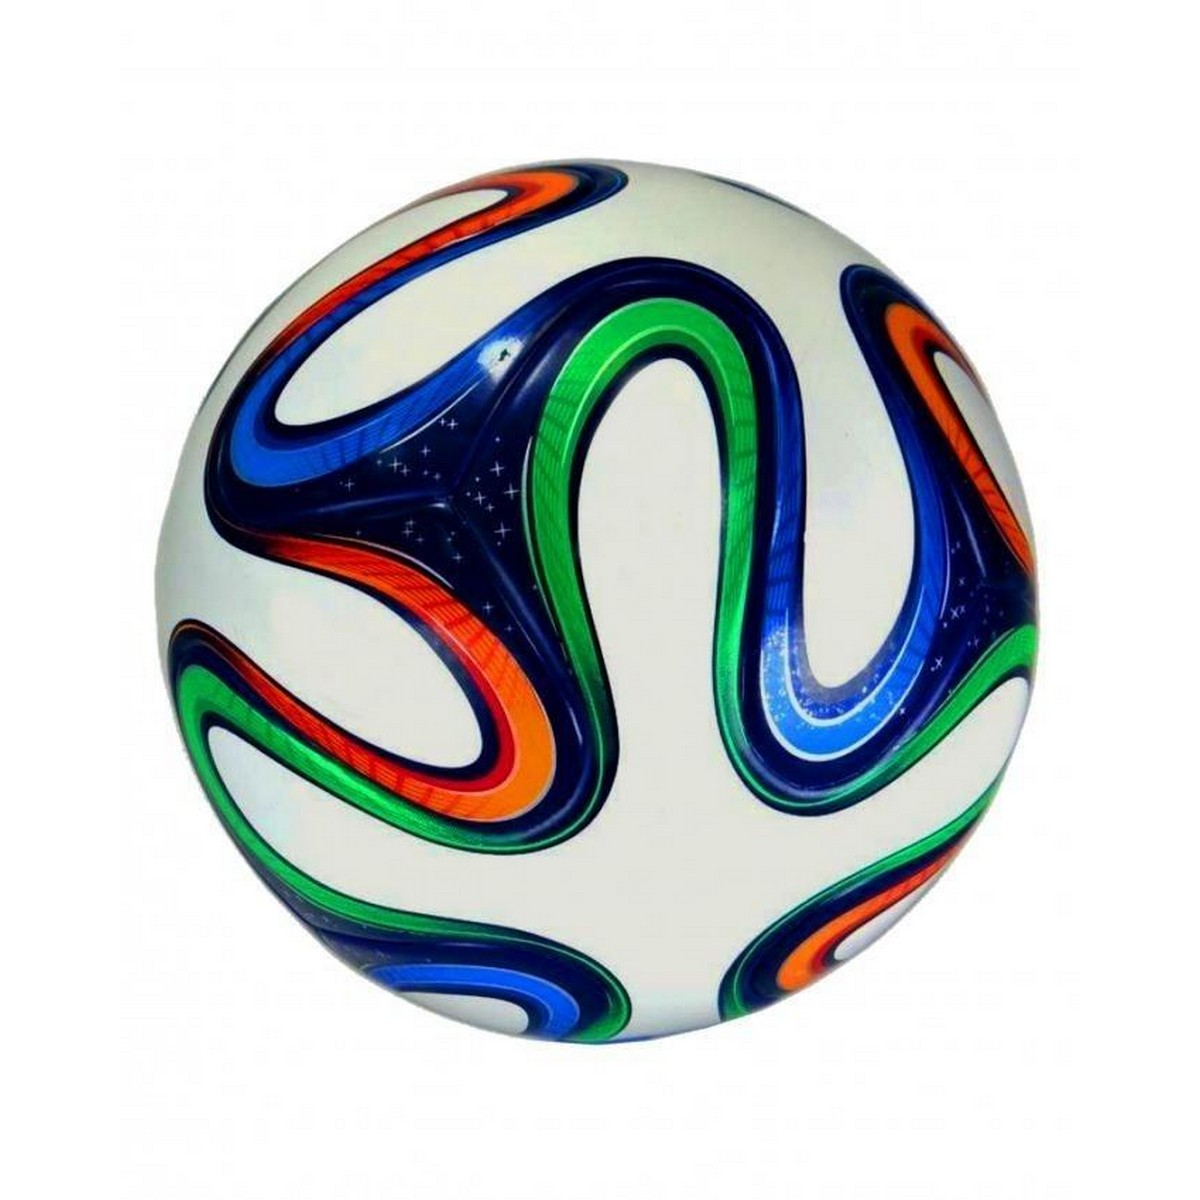 Brazuca Football White High quality Football Cheap Price Football 100% Recommended